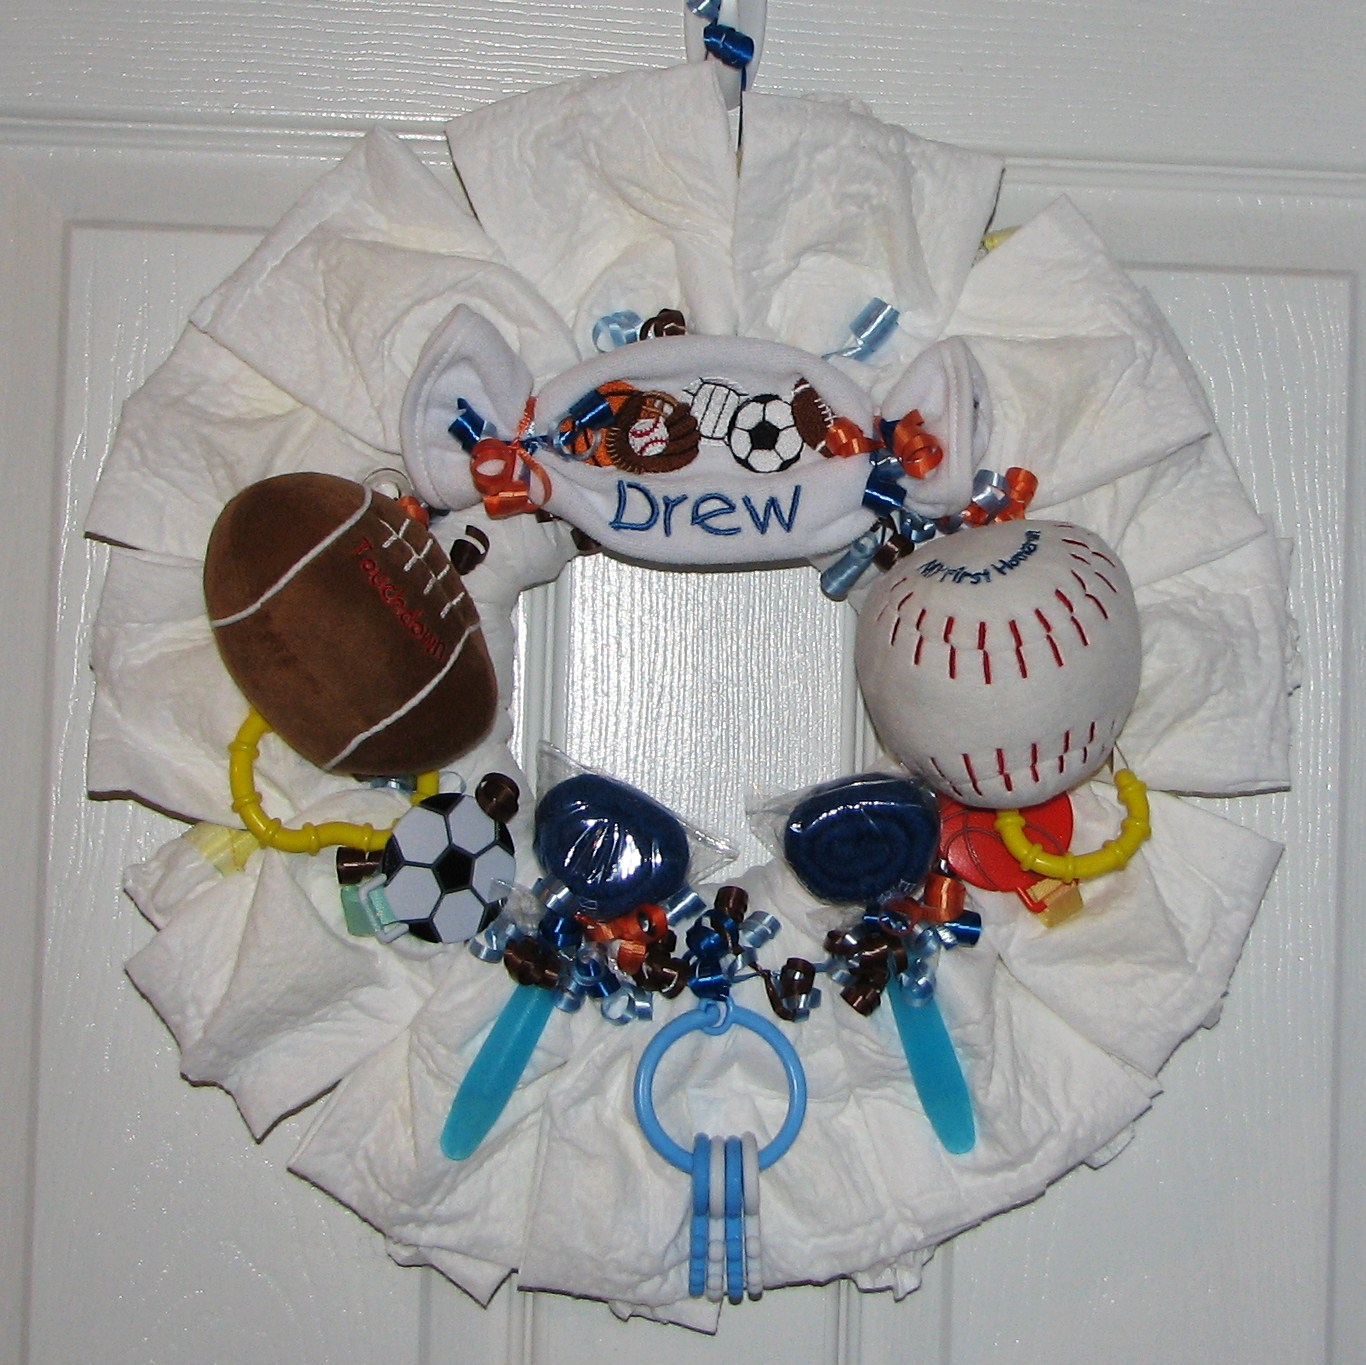 Sports Diaper Wreath.JPG - All Sports Diaper Wreath